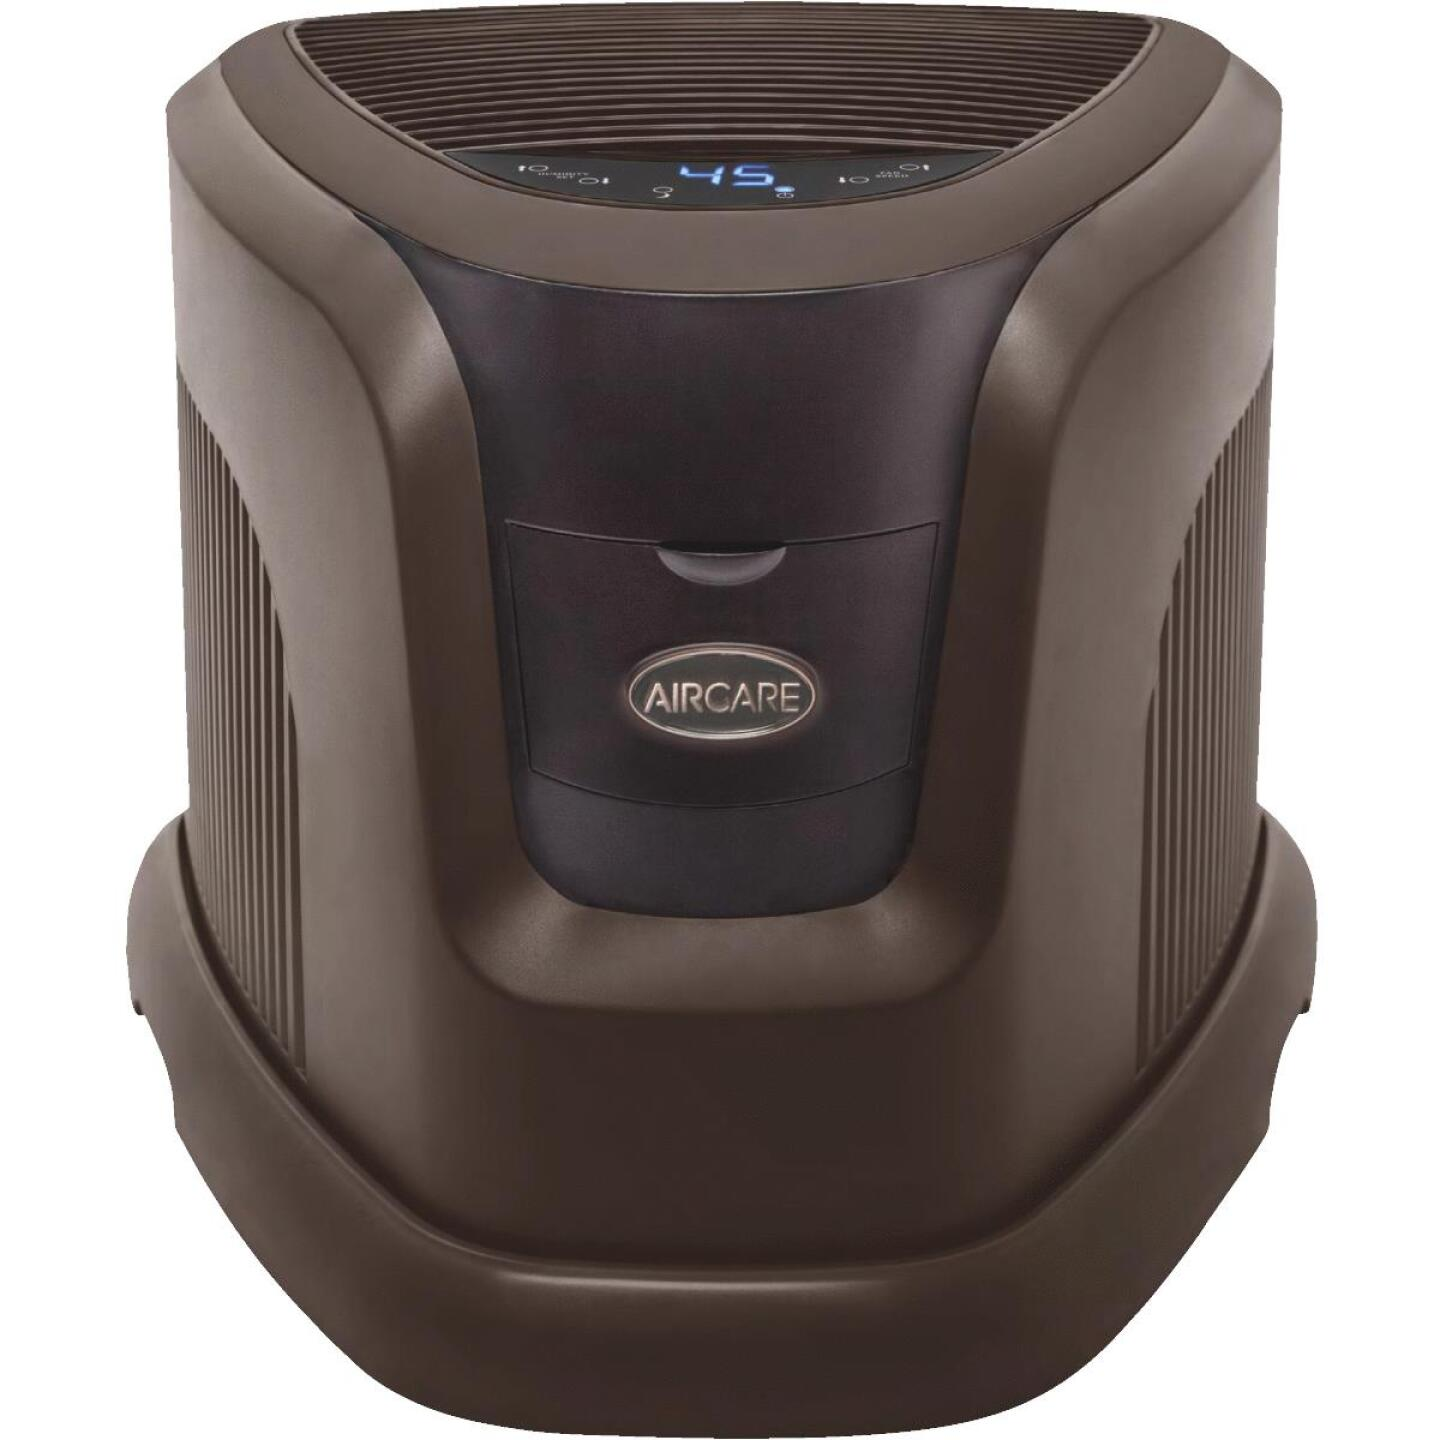 Essick Air Aircare 3-1/2 Gal. Capacity 2500 Sq. Ft. Contemporary Console Humidifier Image 1